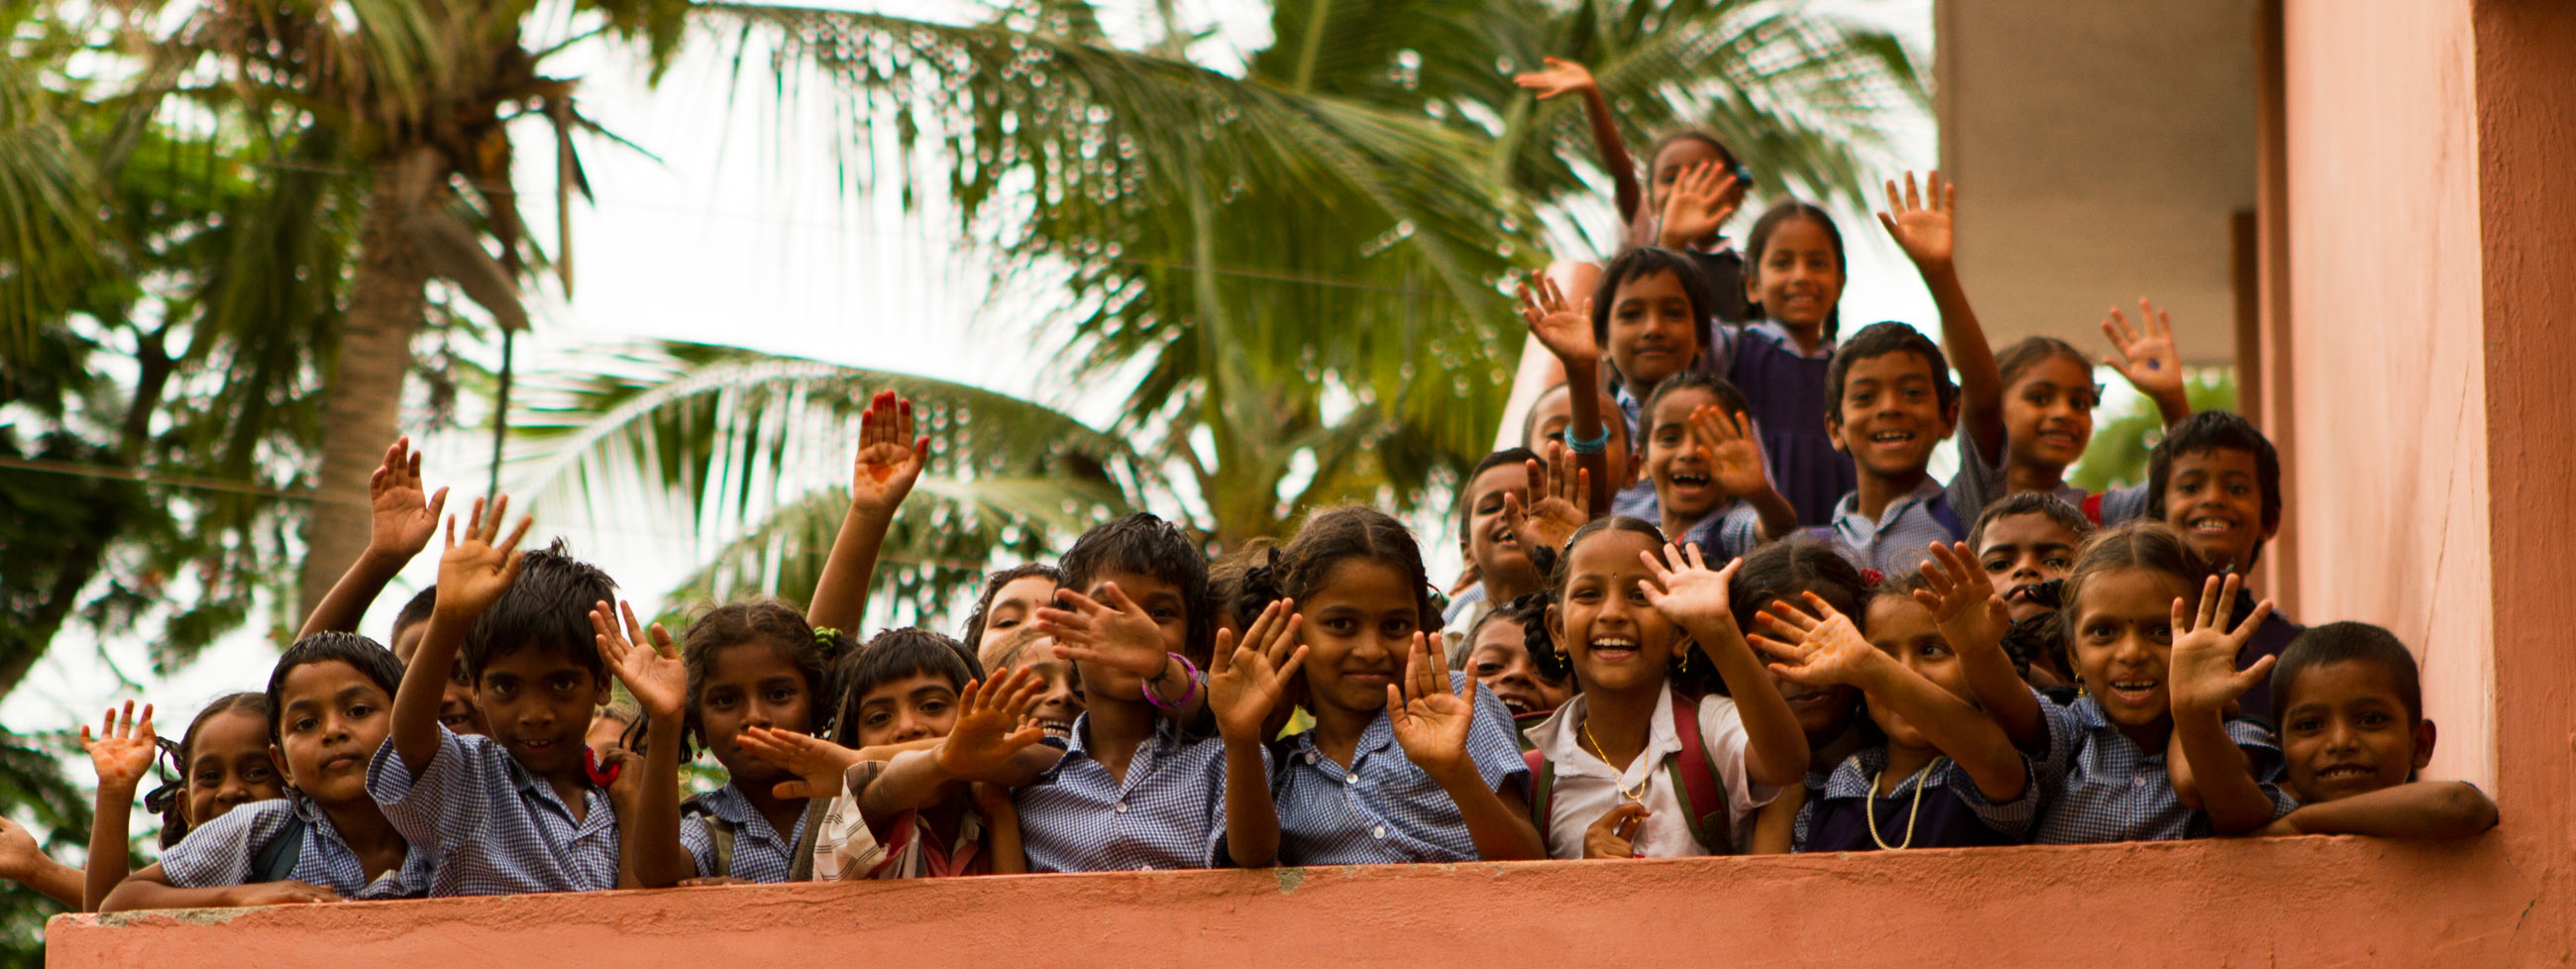 Indian-Kids-Waving